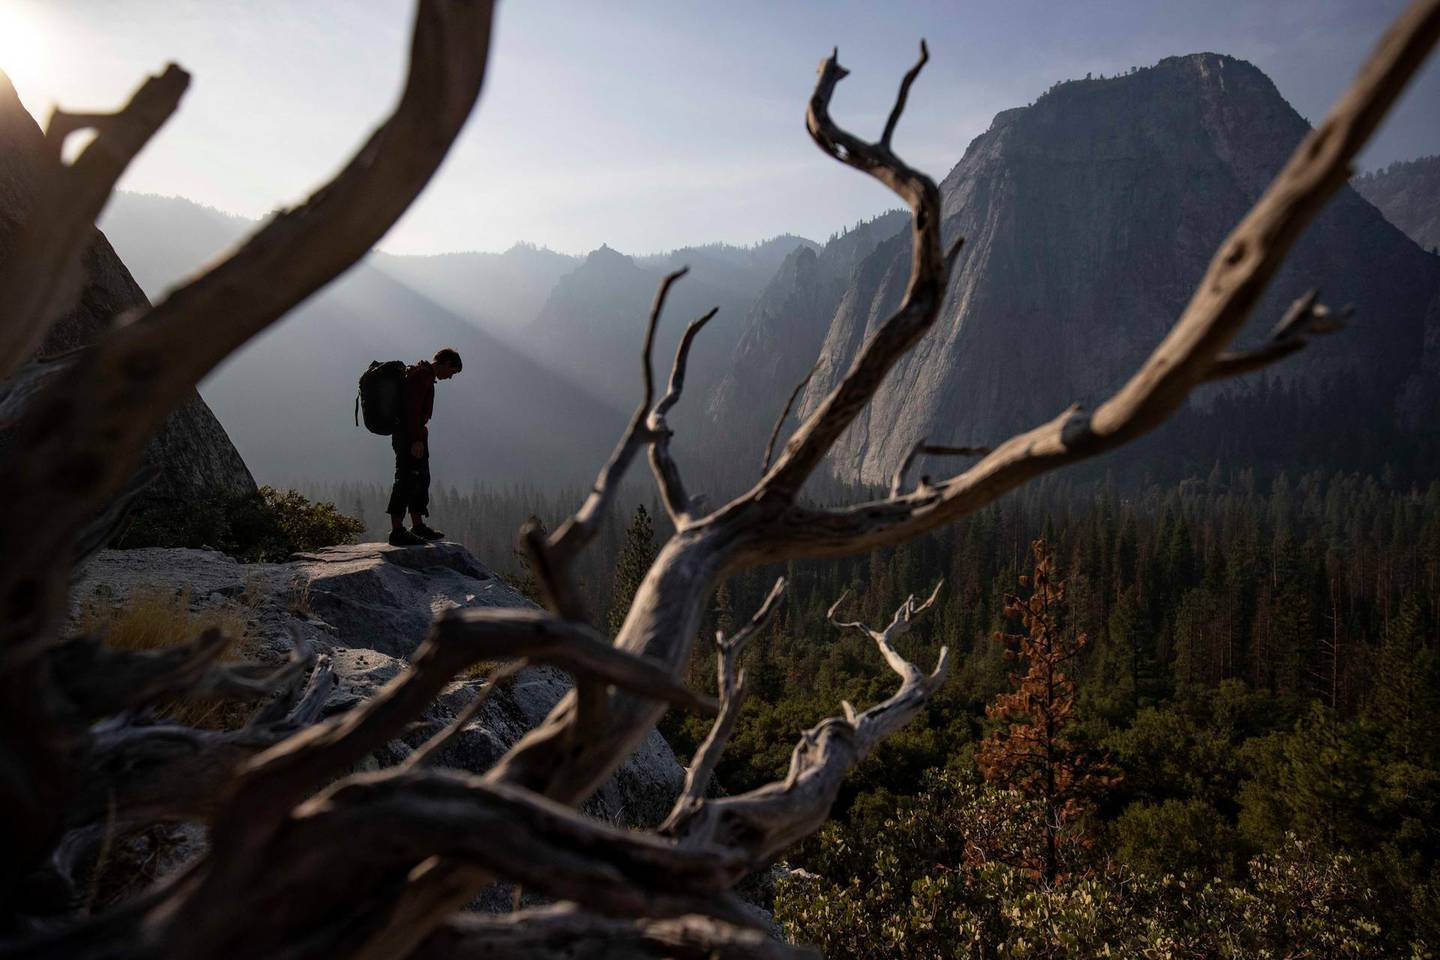 Alex Honnold at the base of El Capitan in Yosemite National Park. (National Geographic/Jimmy Chin)